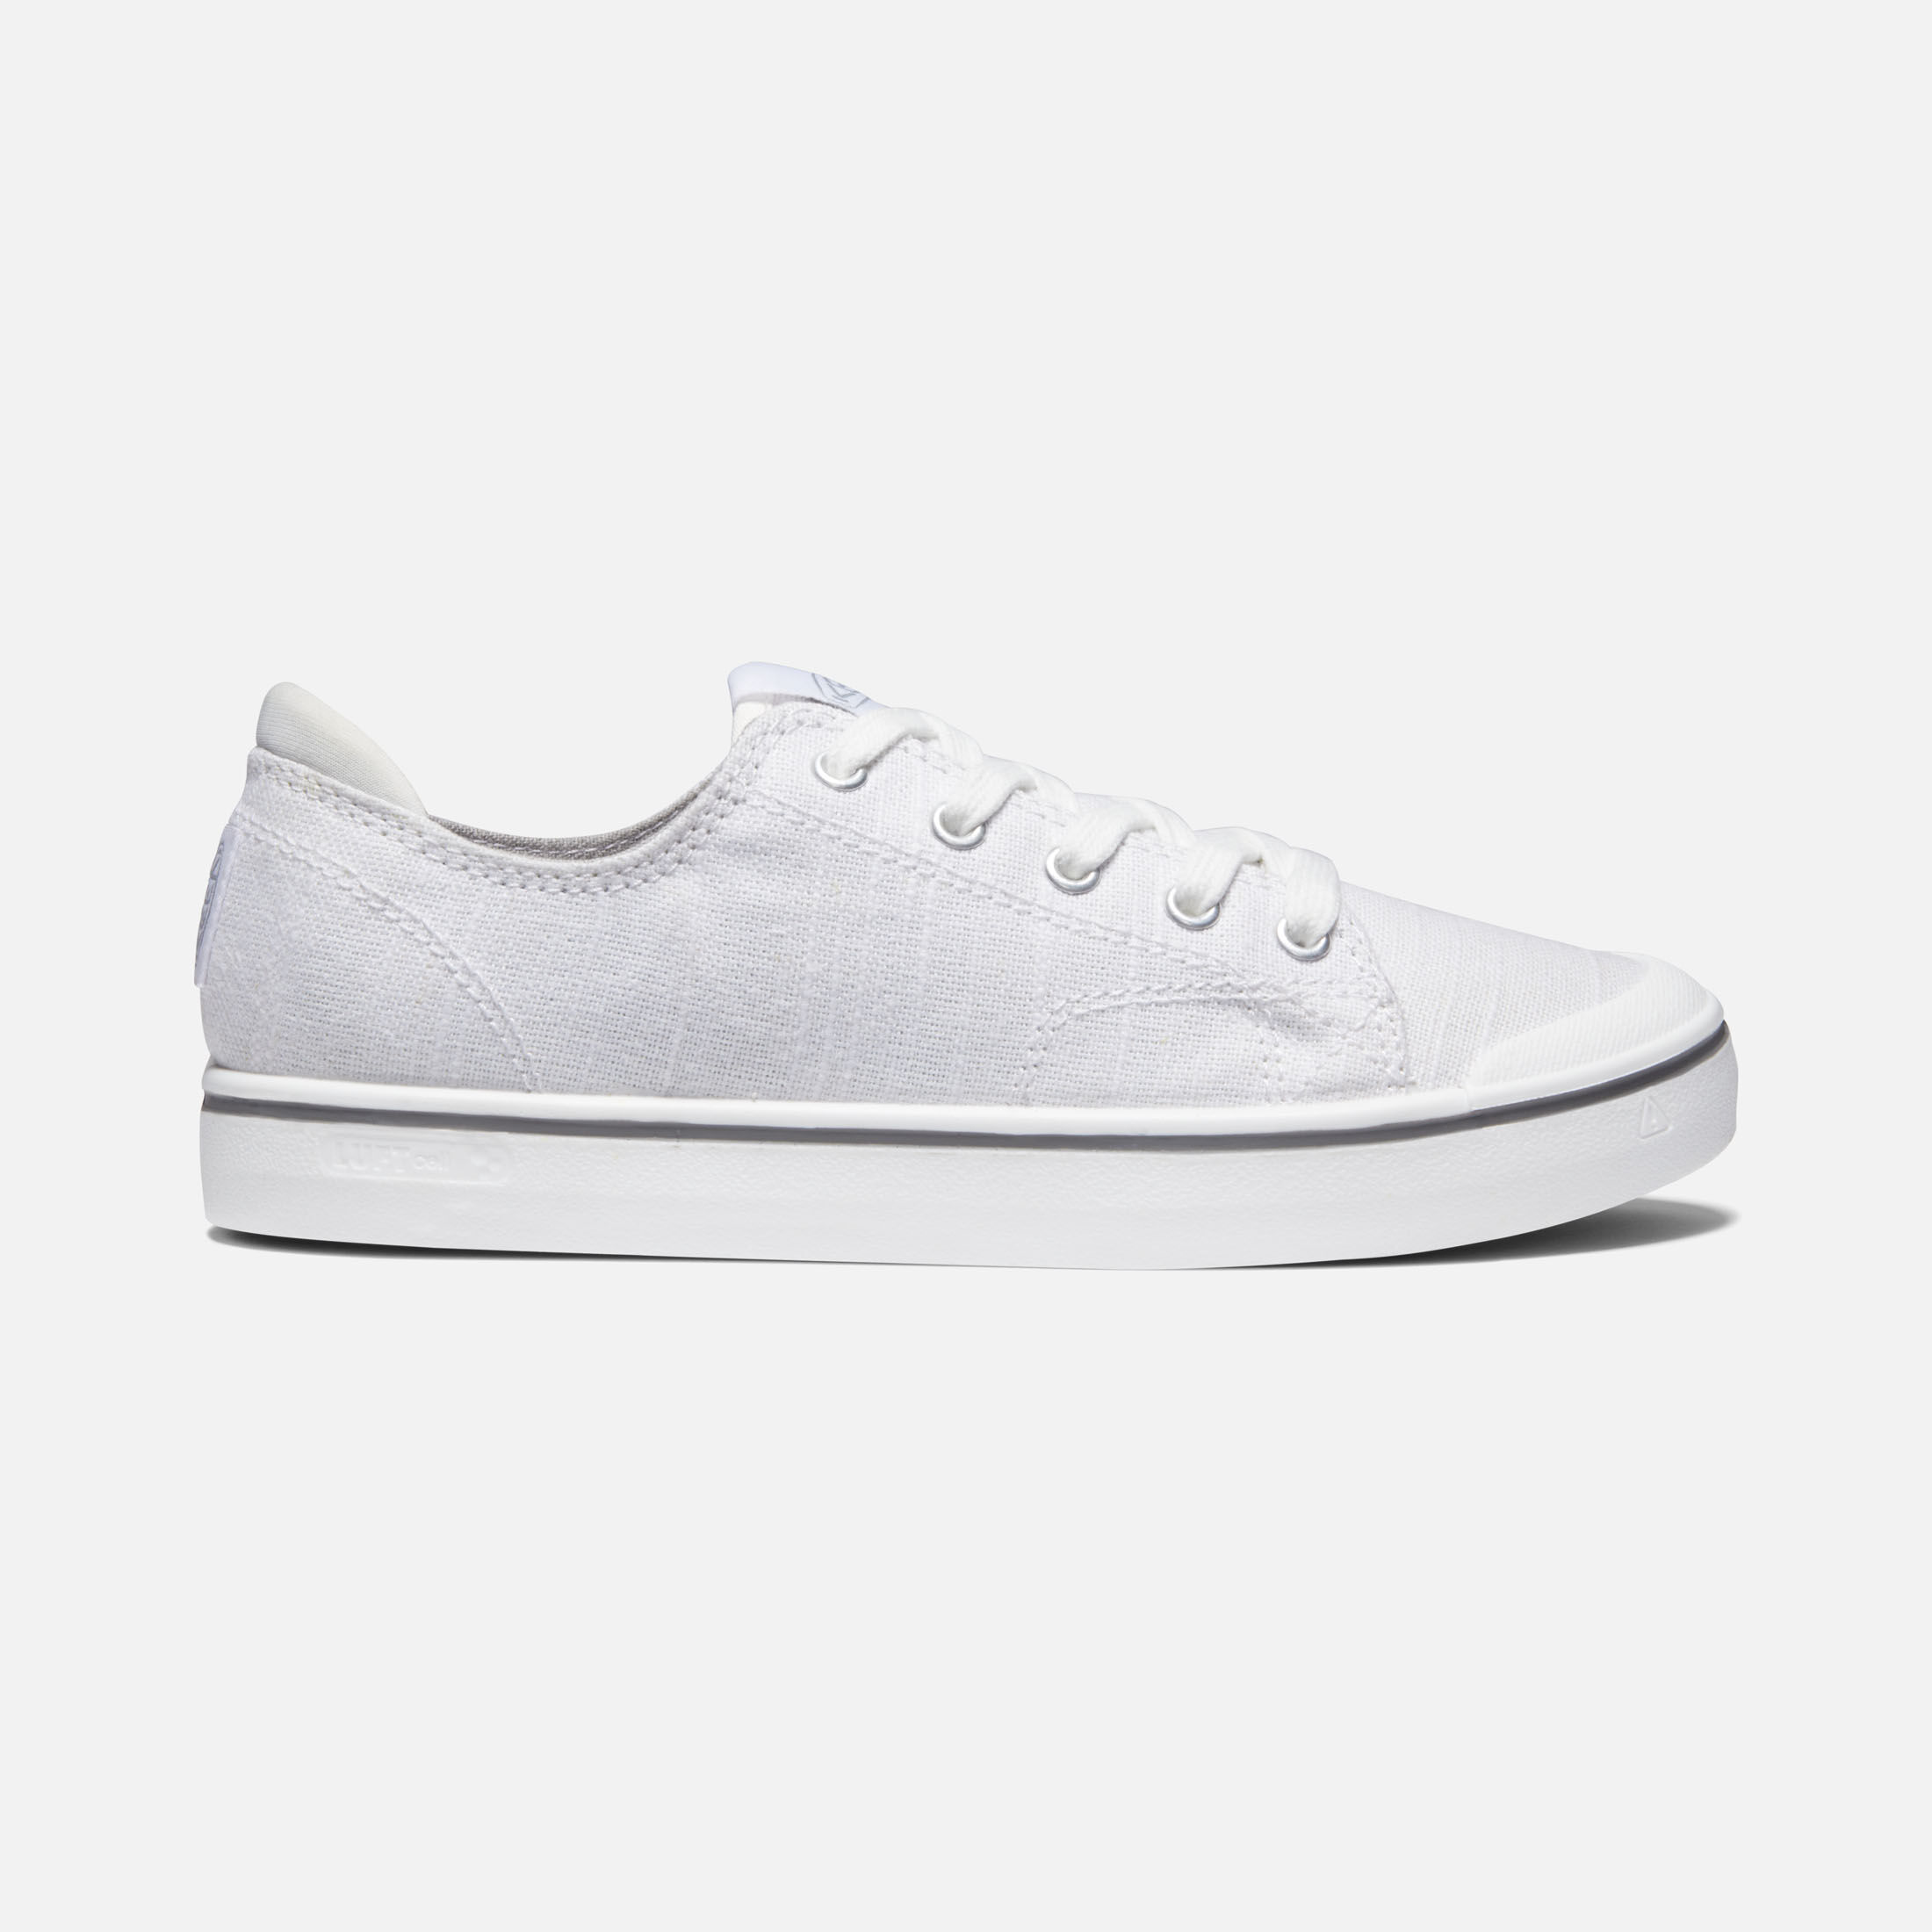 Lace-Up Canvas Sneakers - Elsa IV